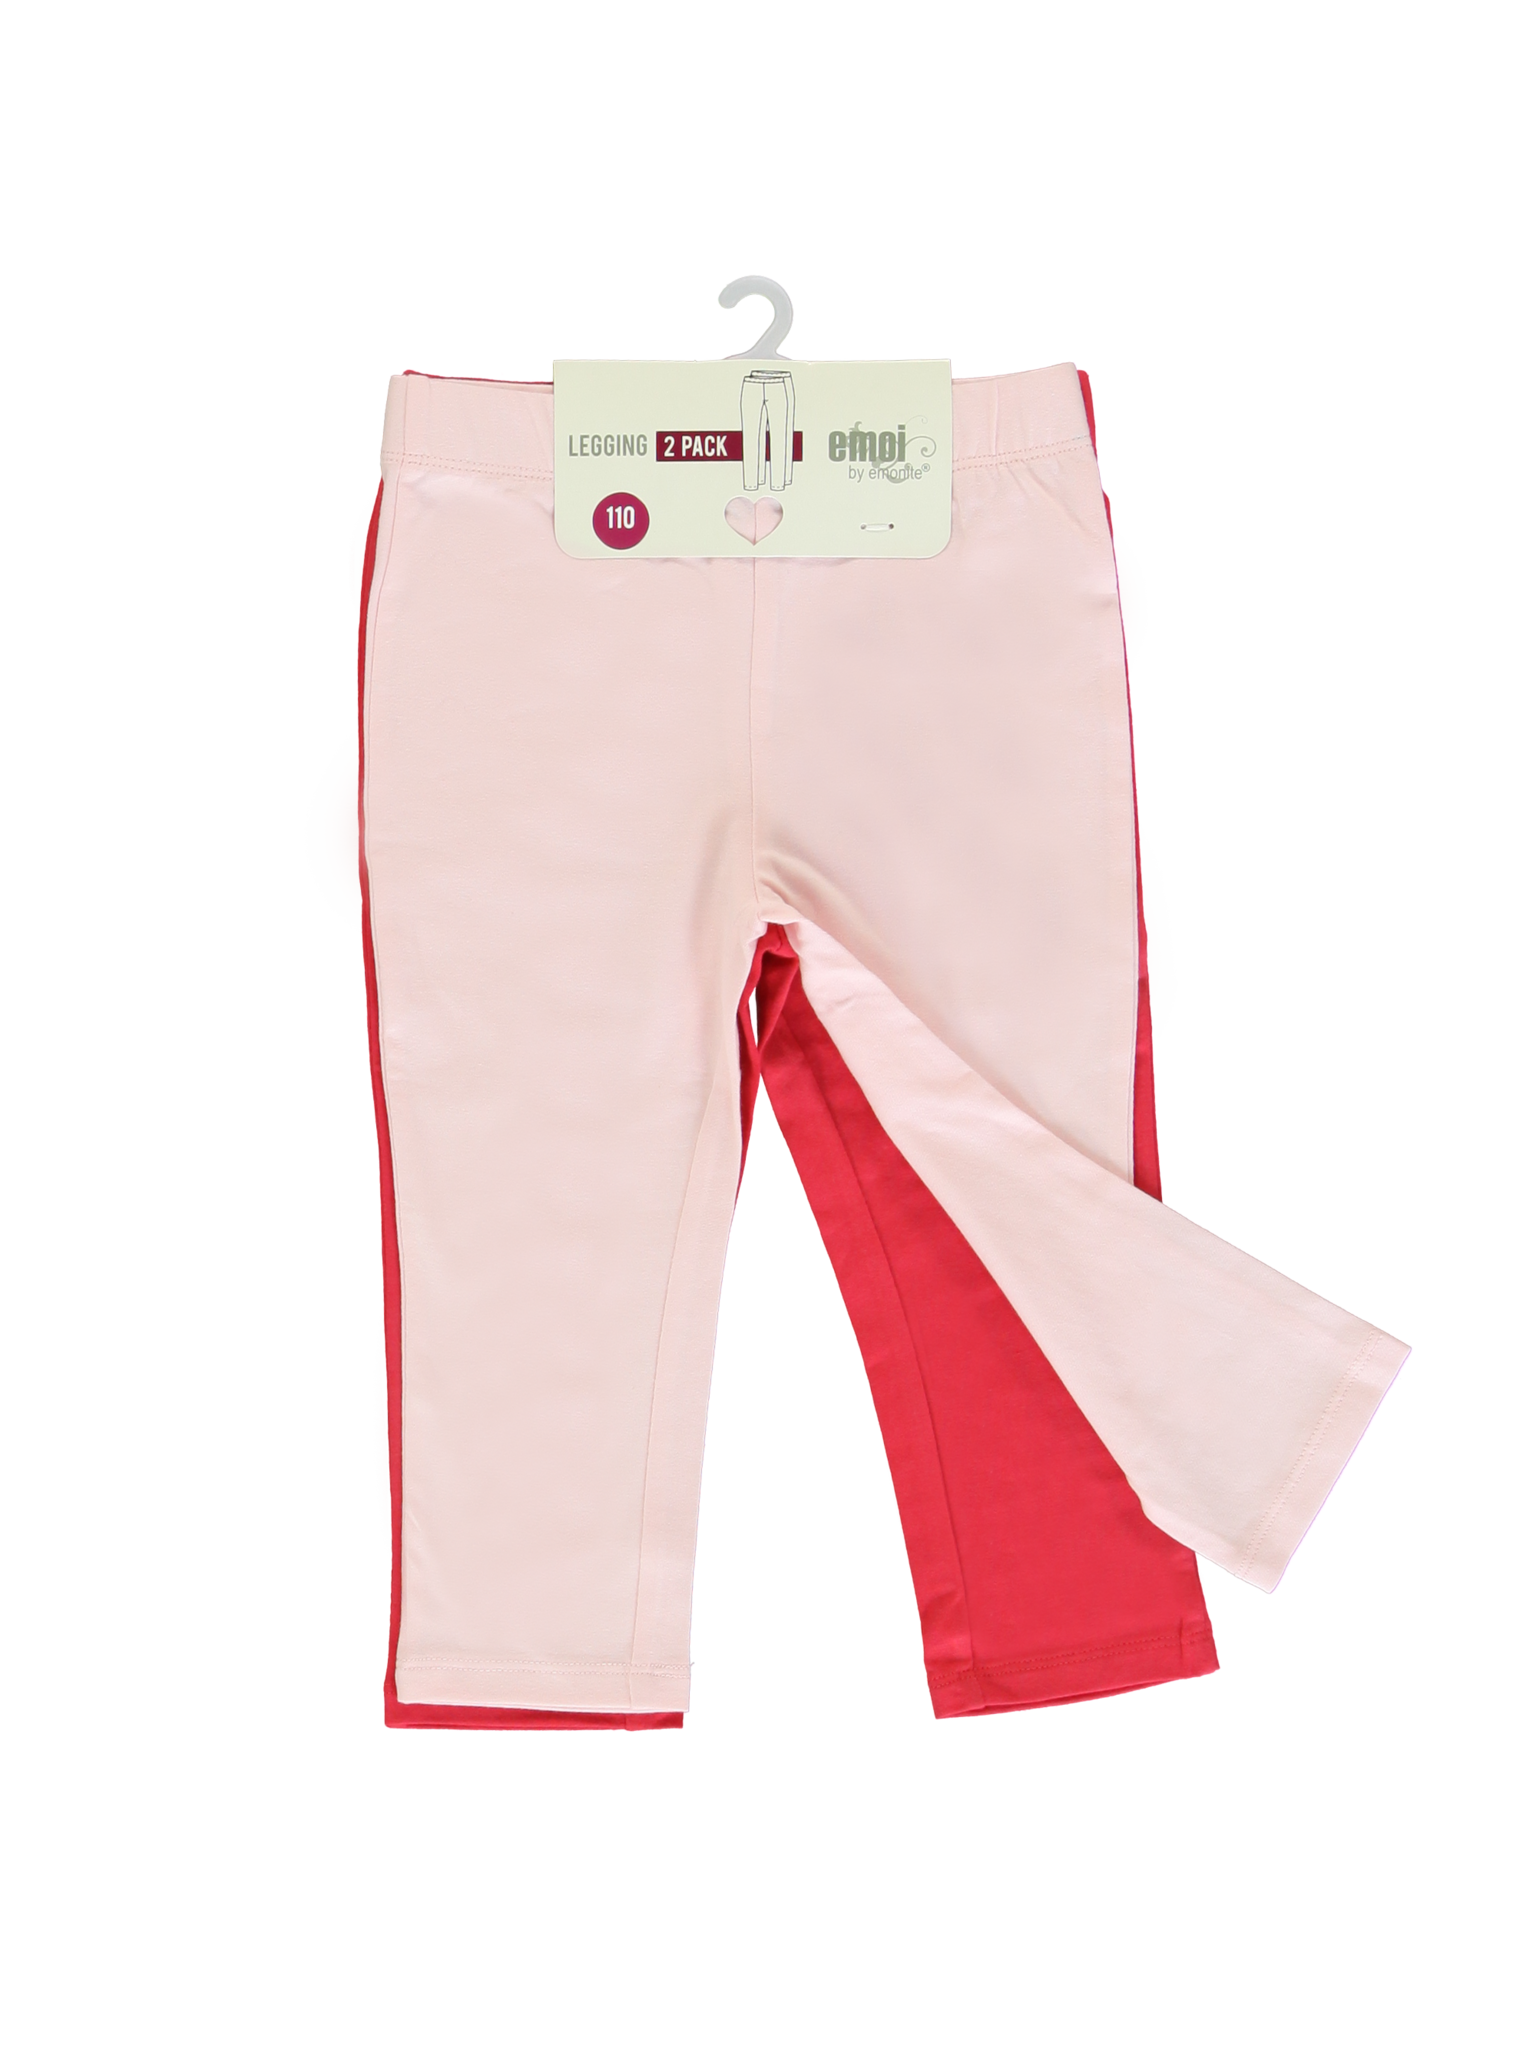 All Brands | Summerproducts Small Girls | Legging | 10 pcs/box